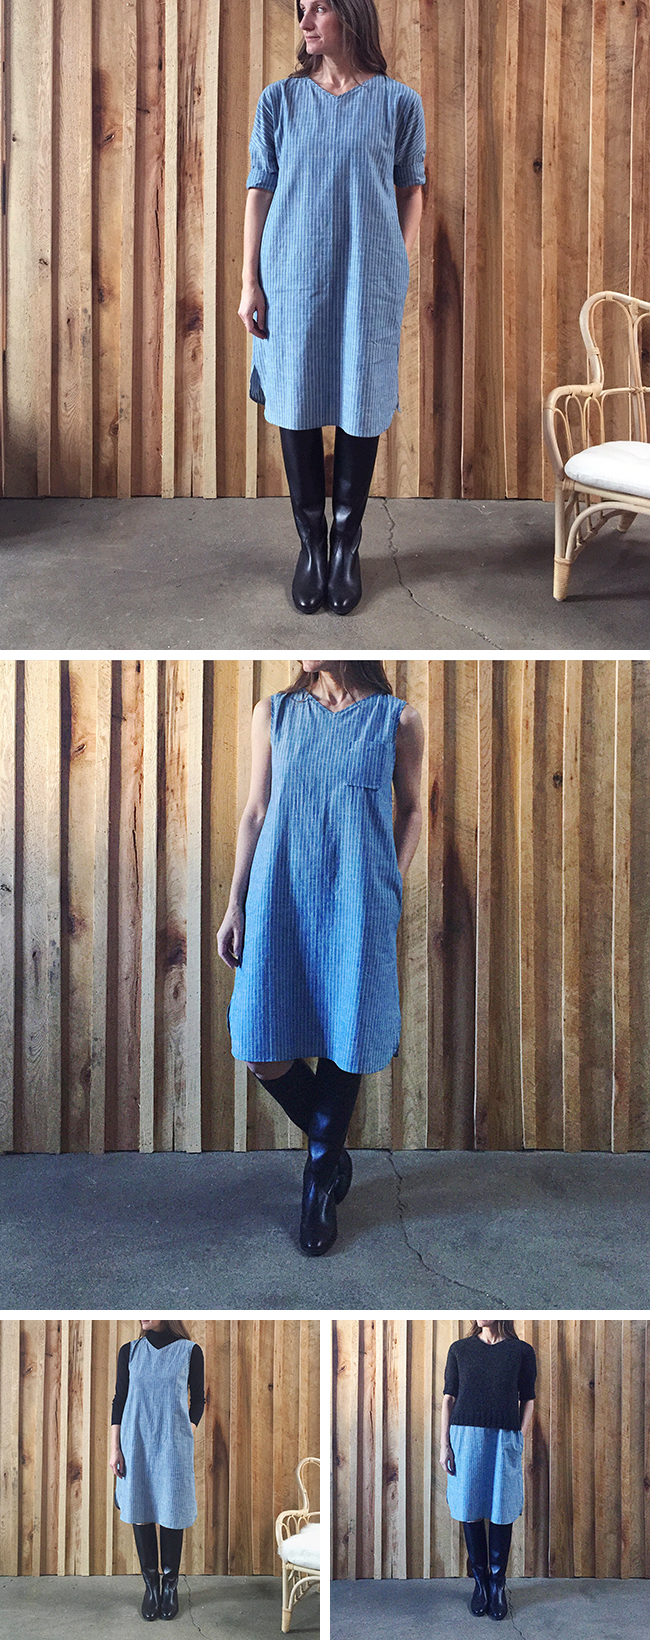 KTFO-2016.4 : Blue sleeveless dress details